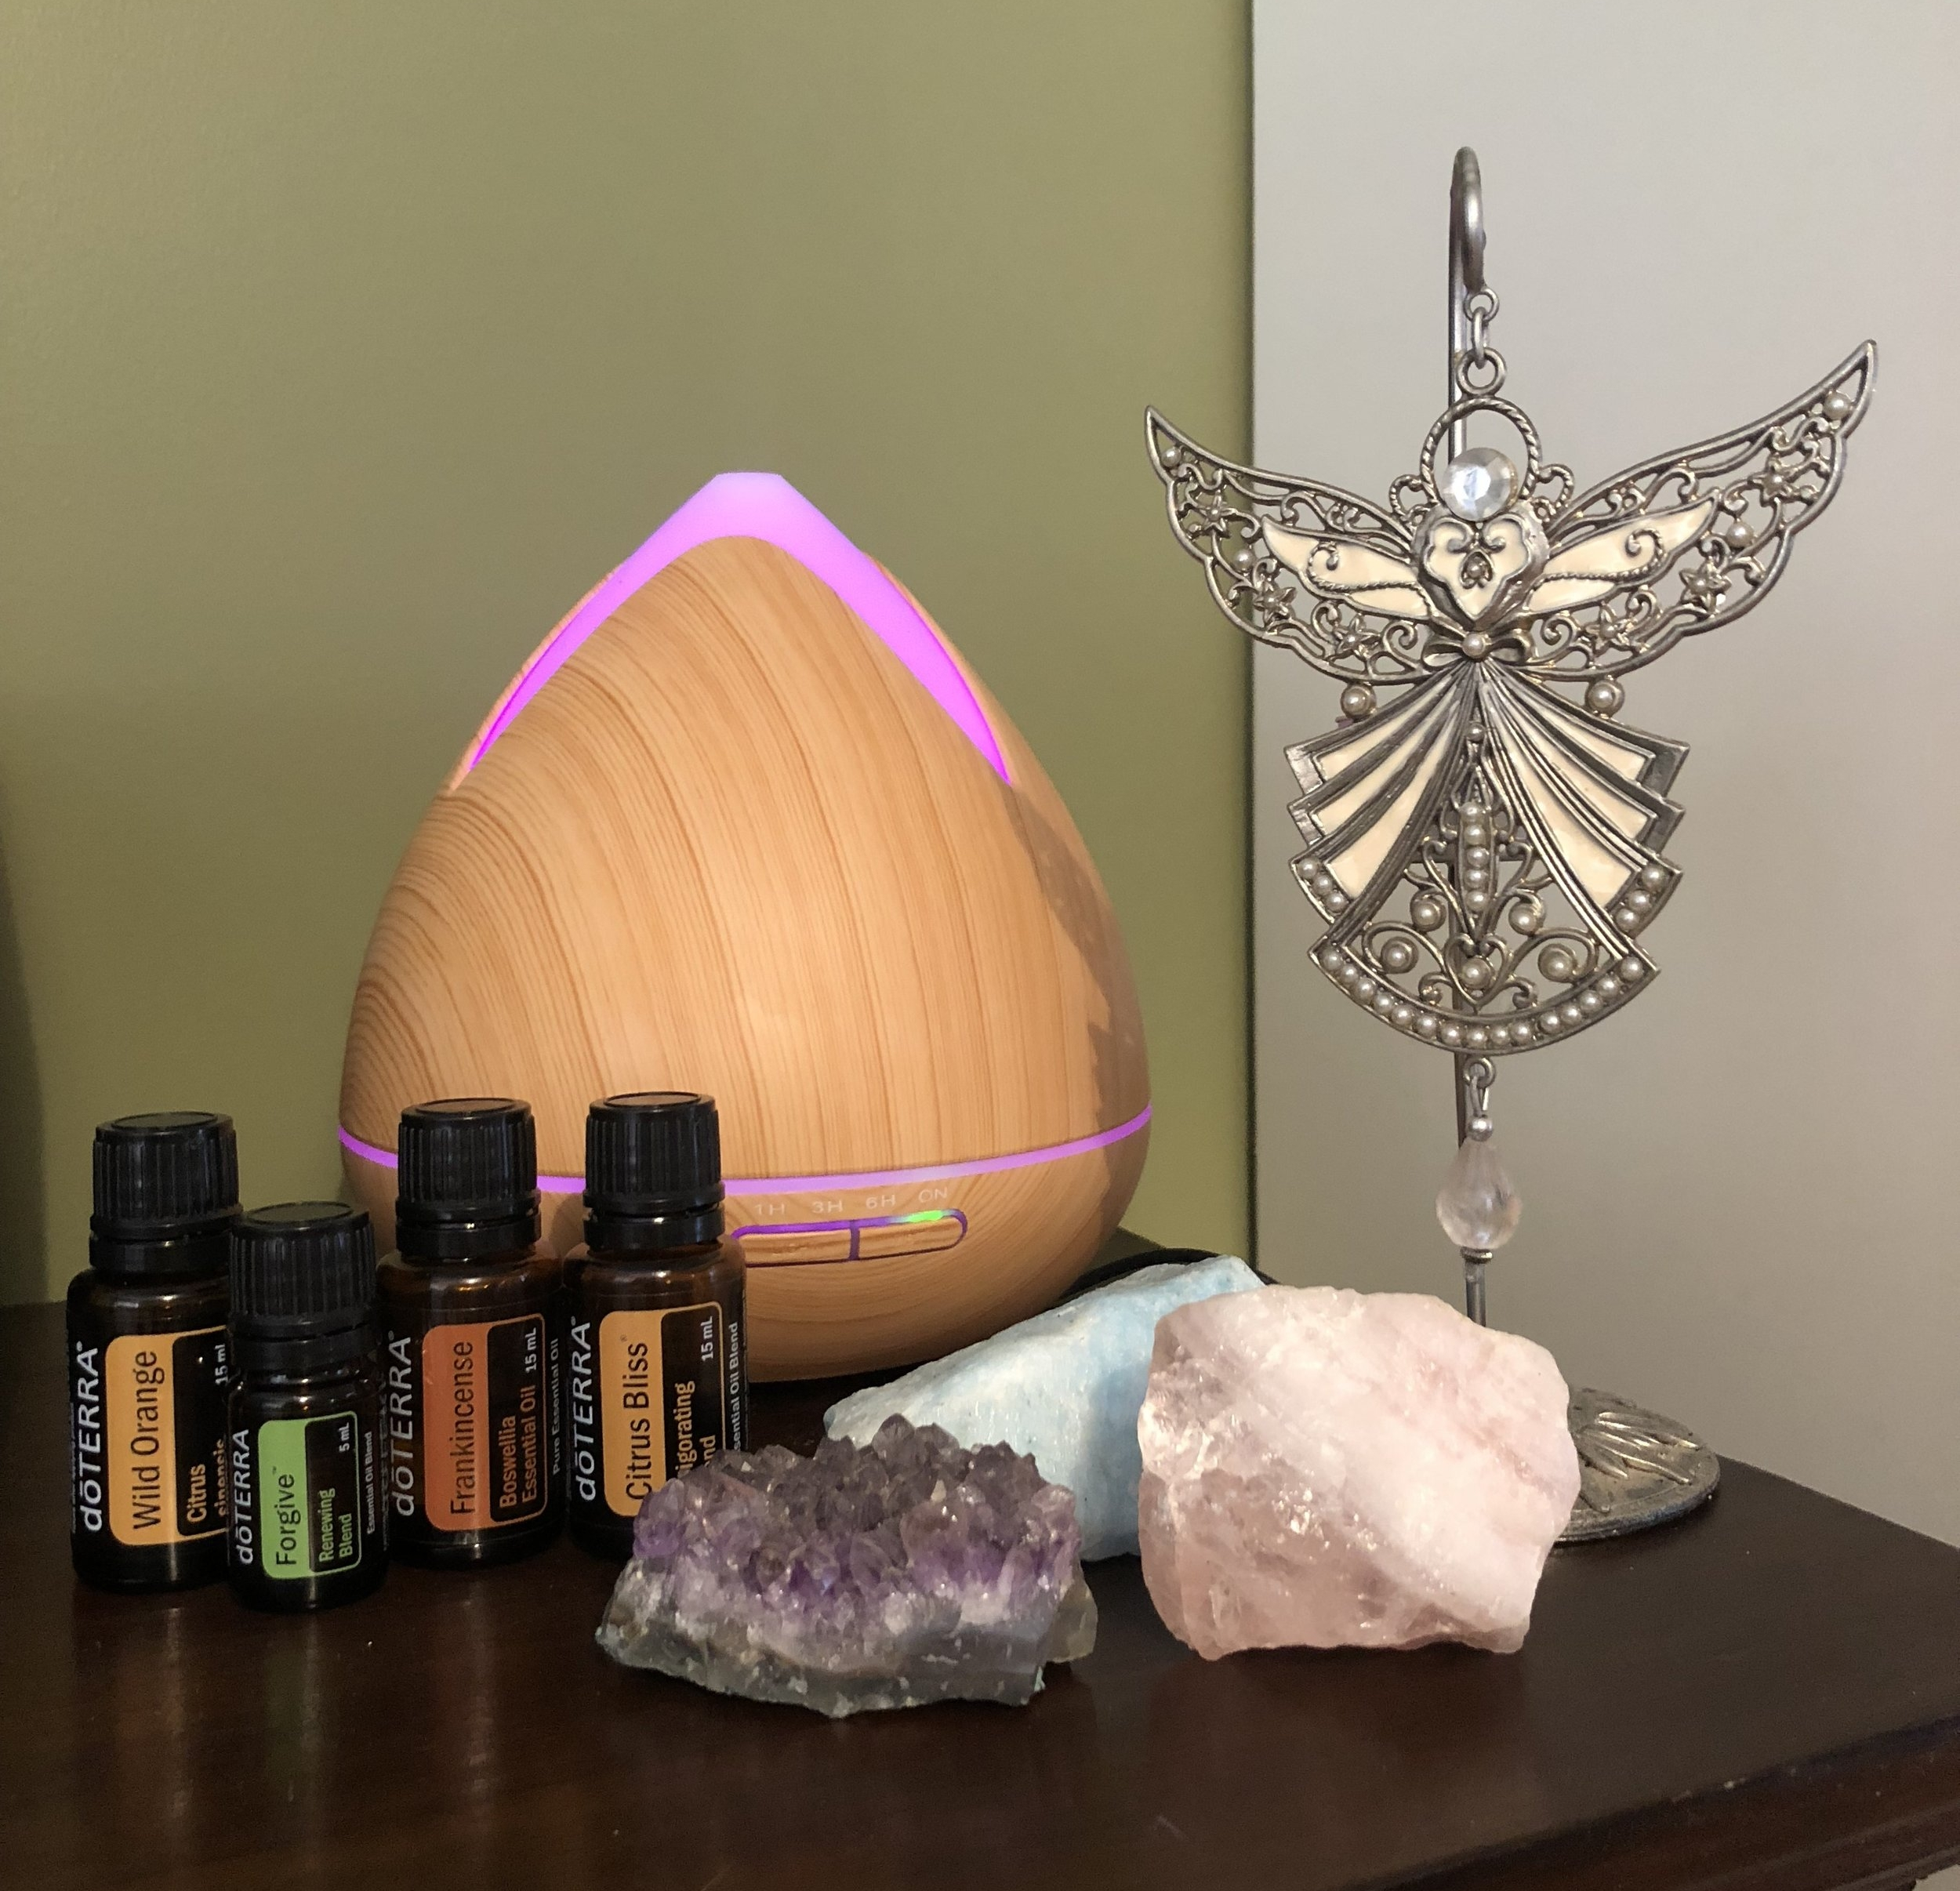 Diffusing essential oils to assist with healing, body, mind & spirit and because they smell divine.